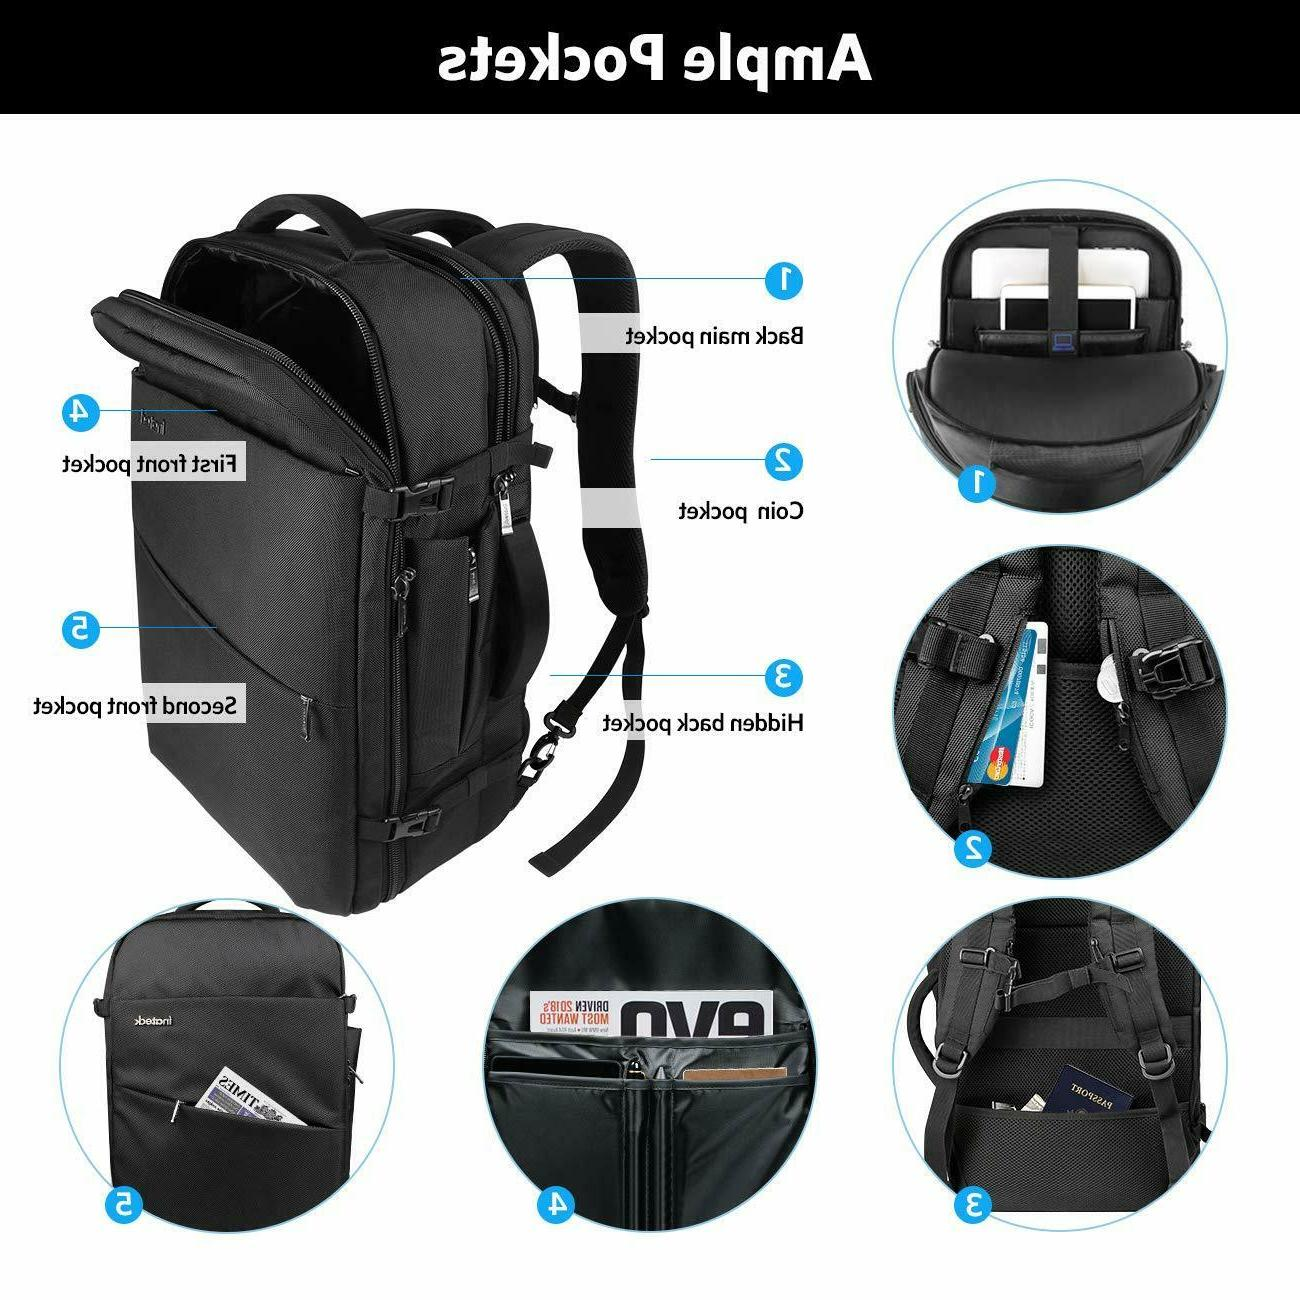 Inateck 40L Backpack, Flight Approved Carry-On Backpack